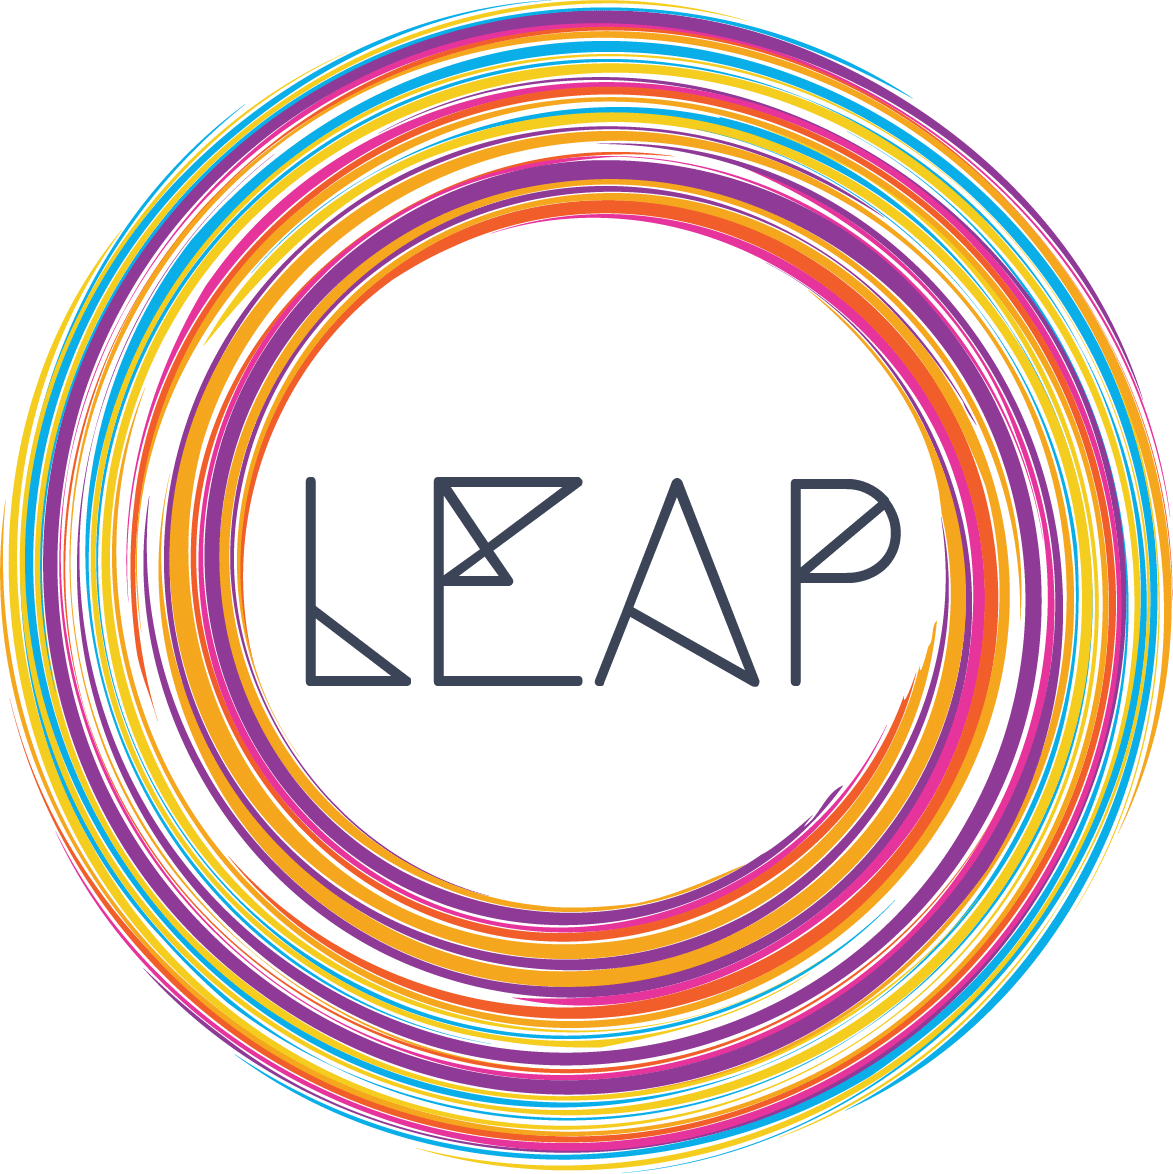 LEAP Engine by ElevenDevs for hiring Software Developers